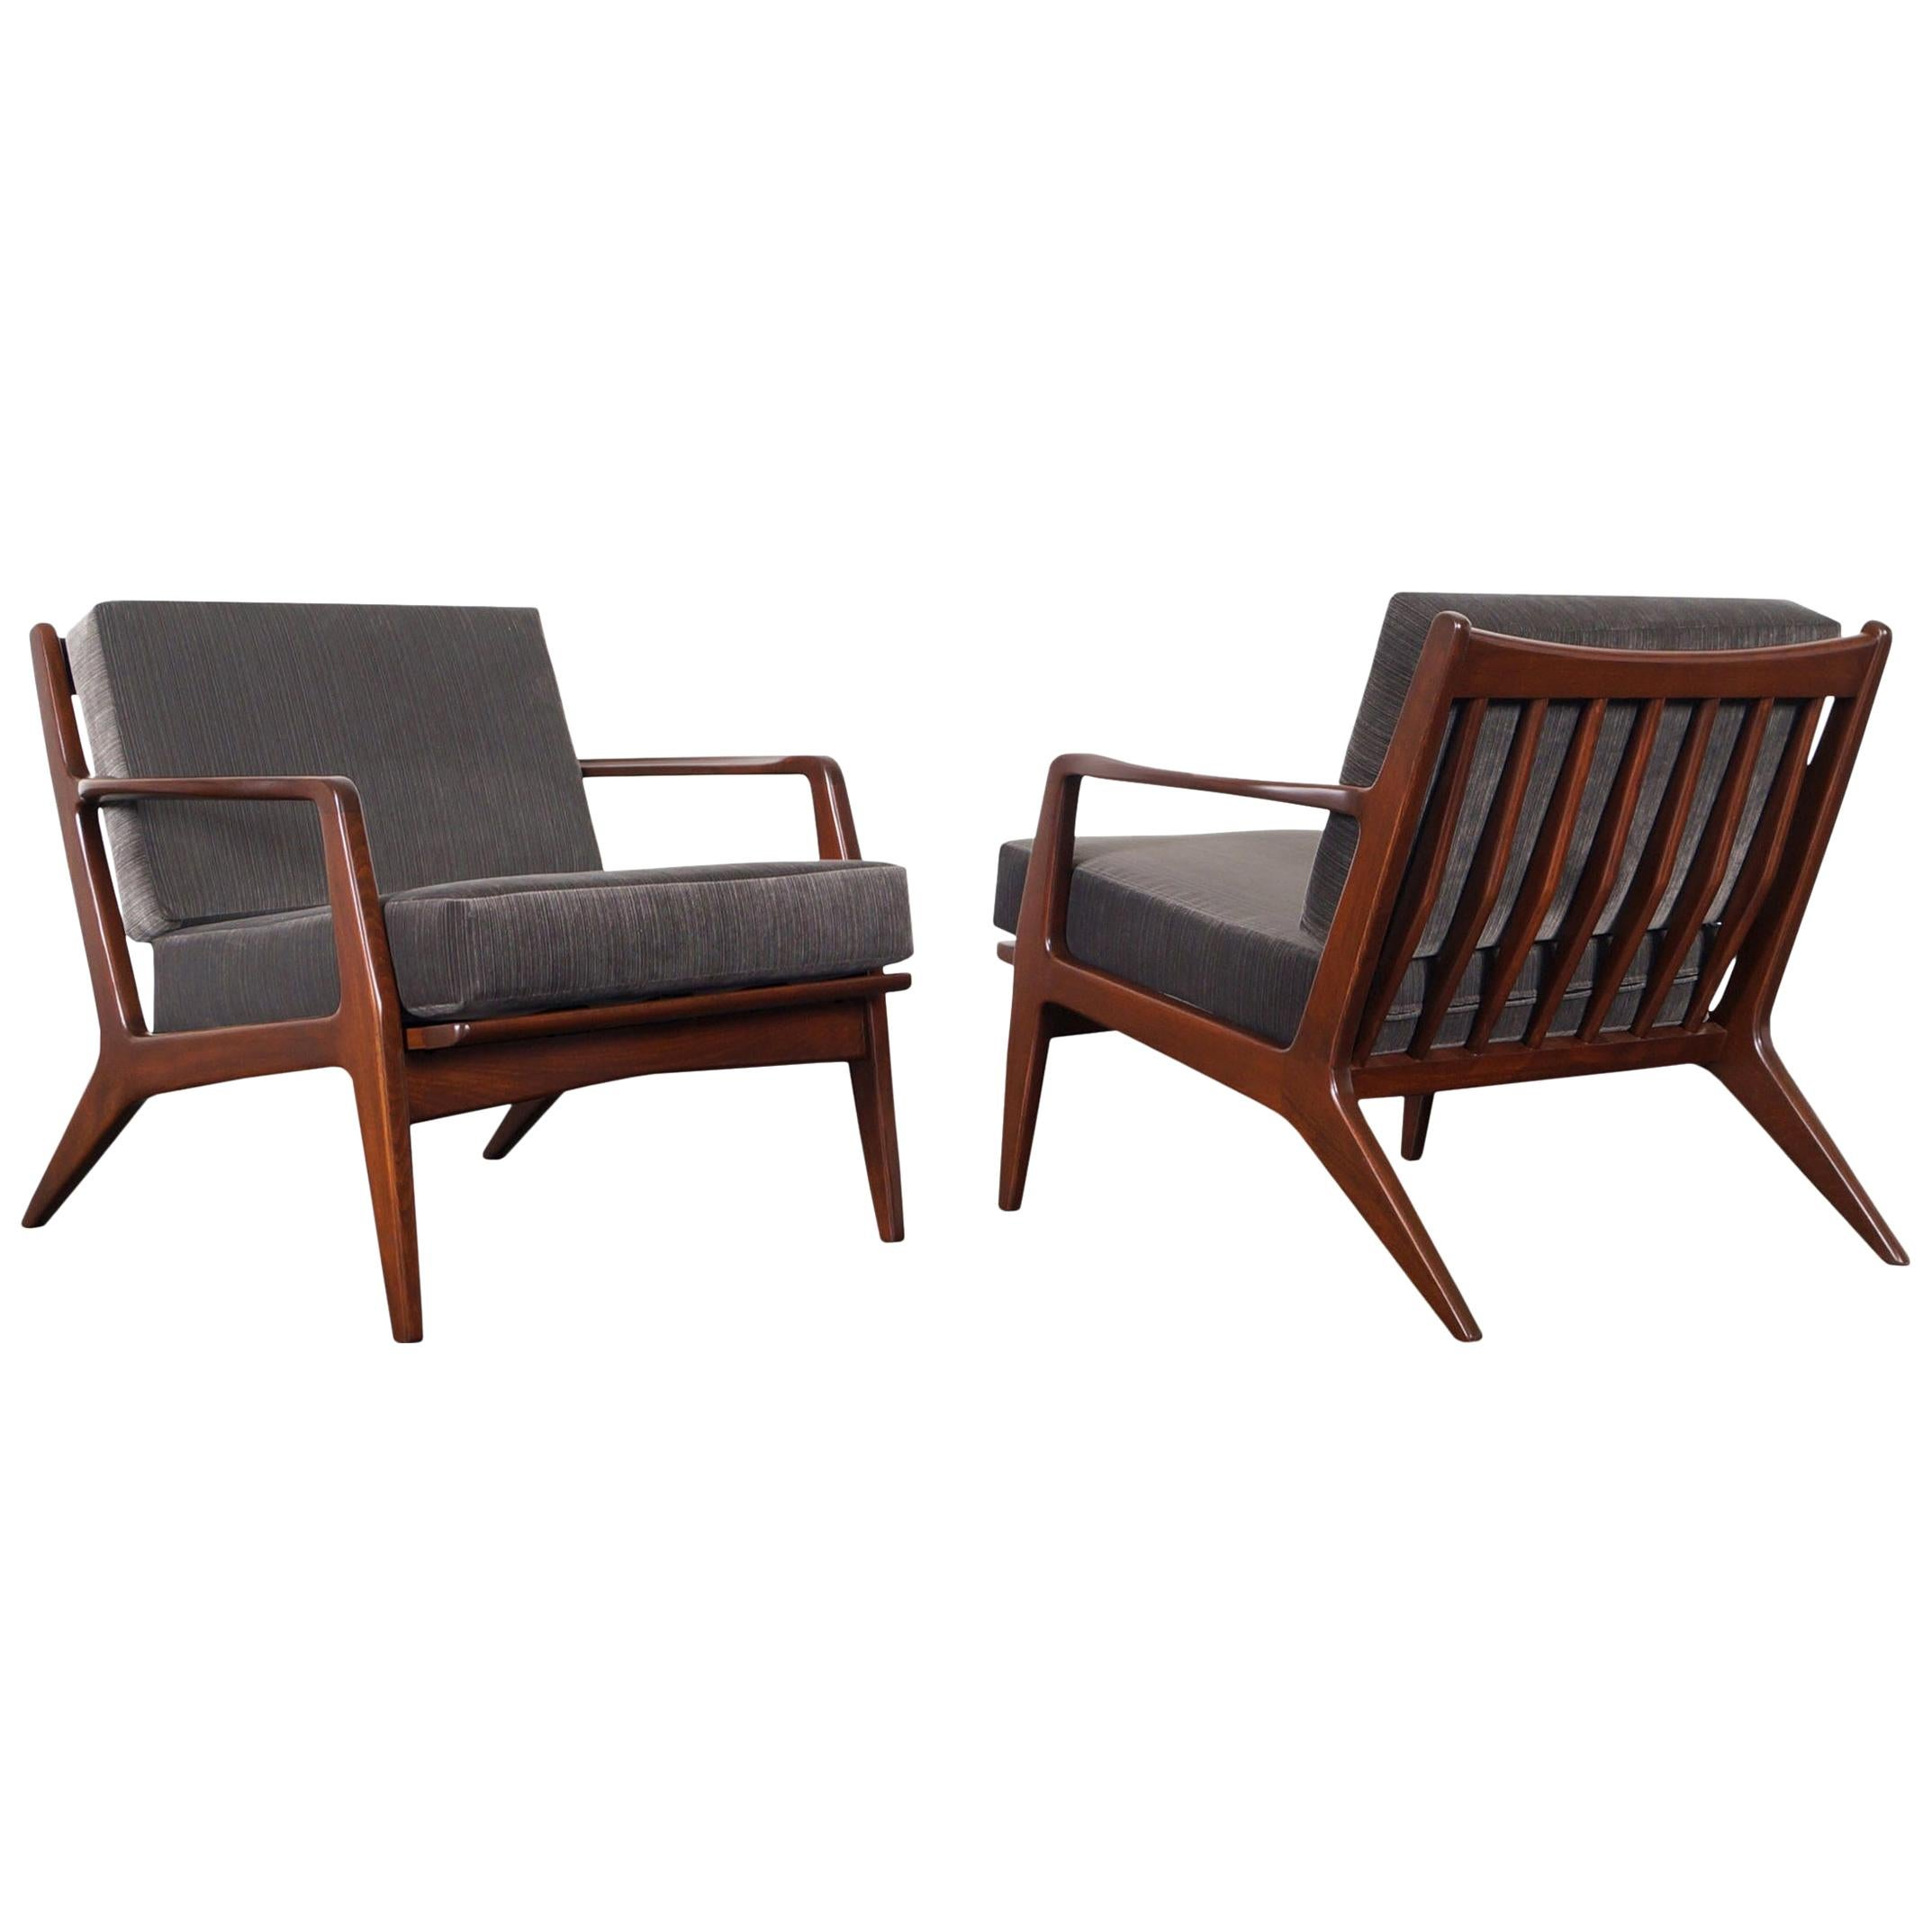 Danish Modern Walnut Lounge Chairs by Ib Kofod-Larsen